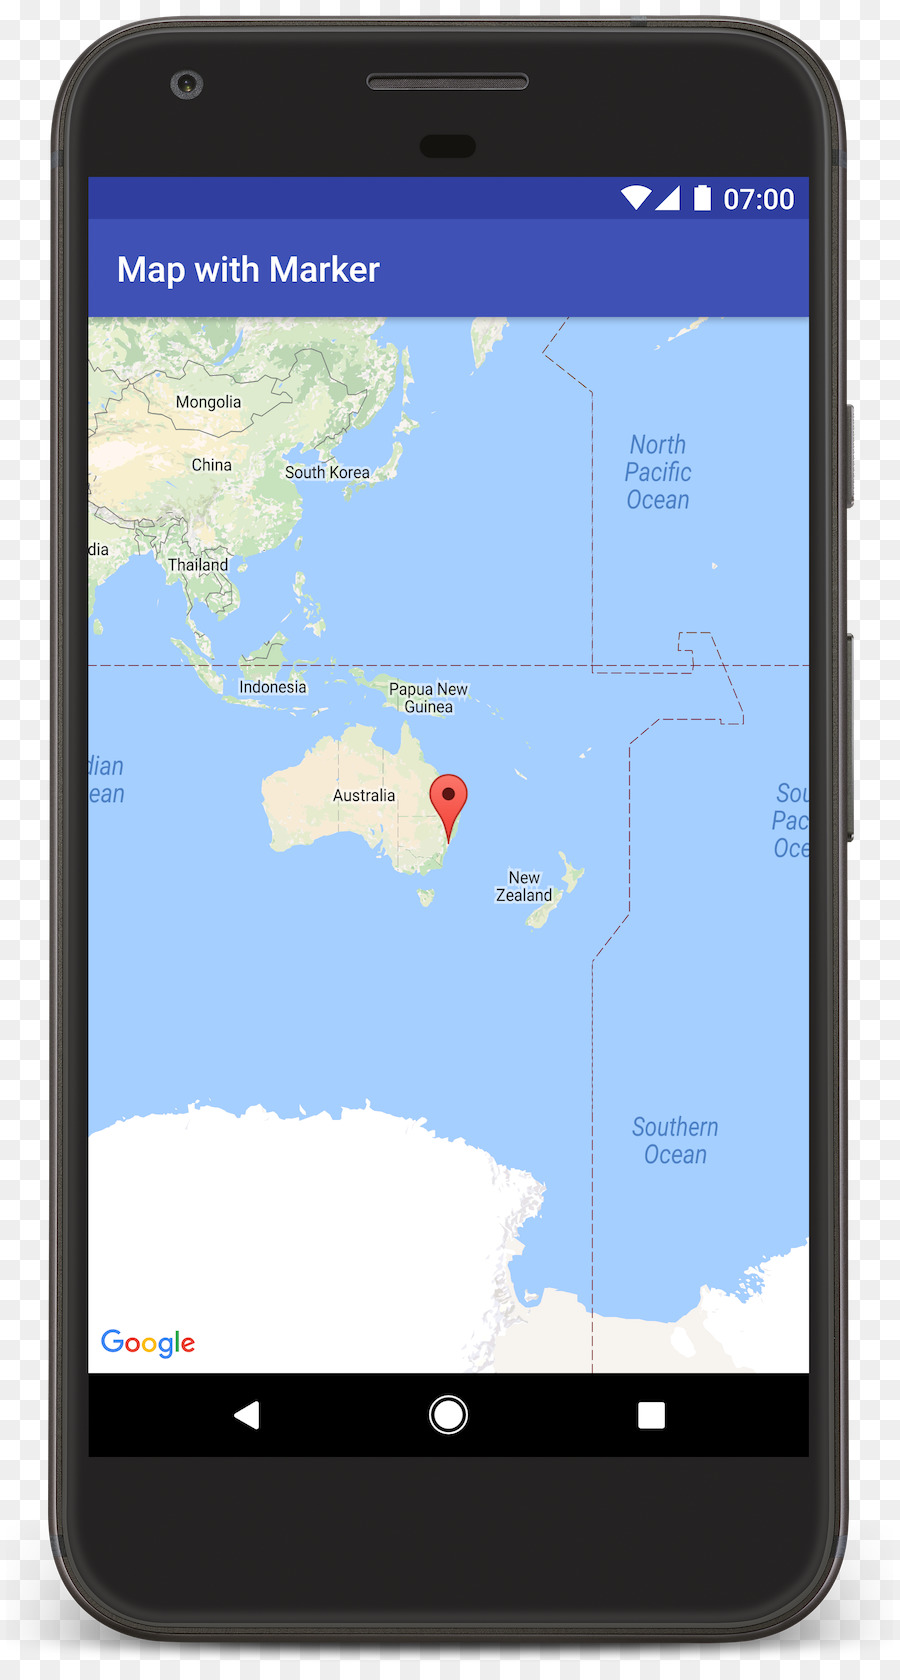 Google Maps Android development Google Developers - gps map ... on